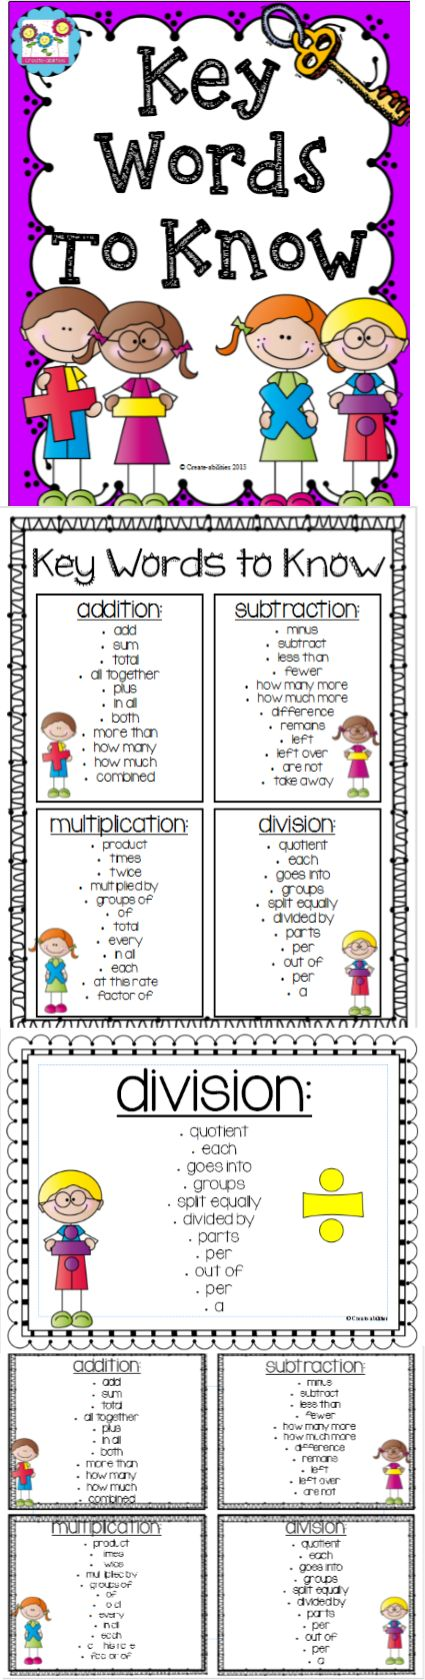 Key Words to Know for word problems. Great lists for students to refer back to! Addition, subtraction, multiplication, division. $ #wordproblems #math #keywordstoknow